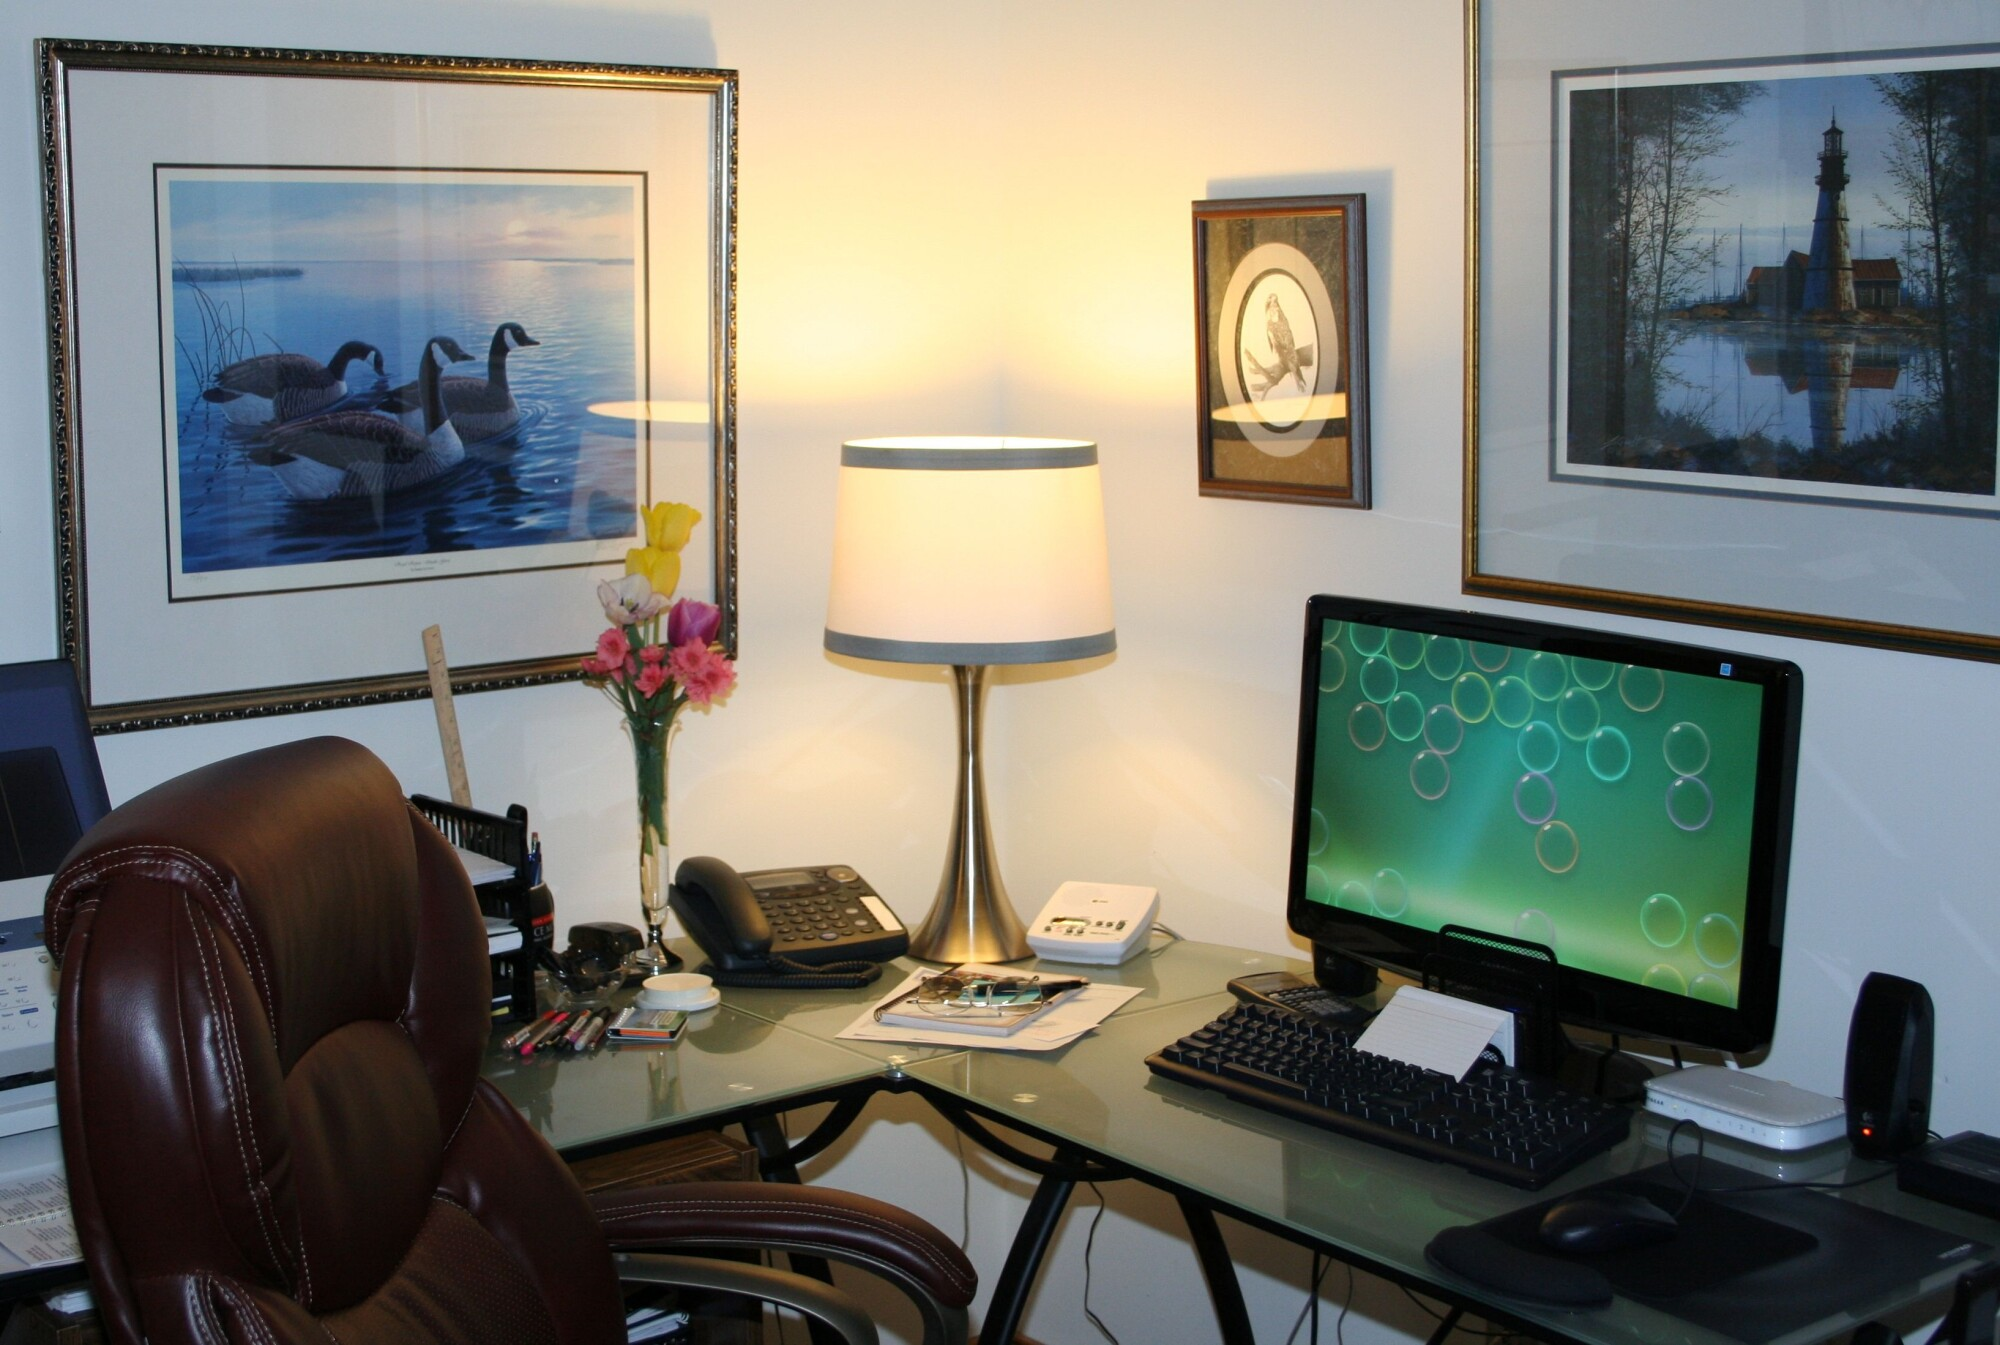 6 Thoughtful Ways to Ensure Home Office Safety